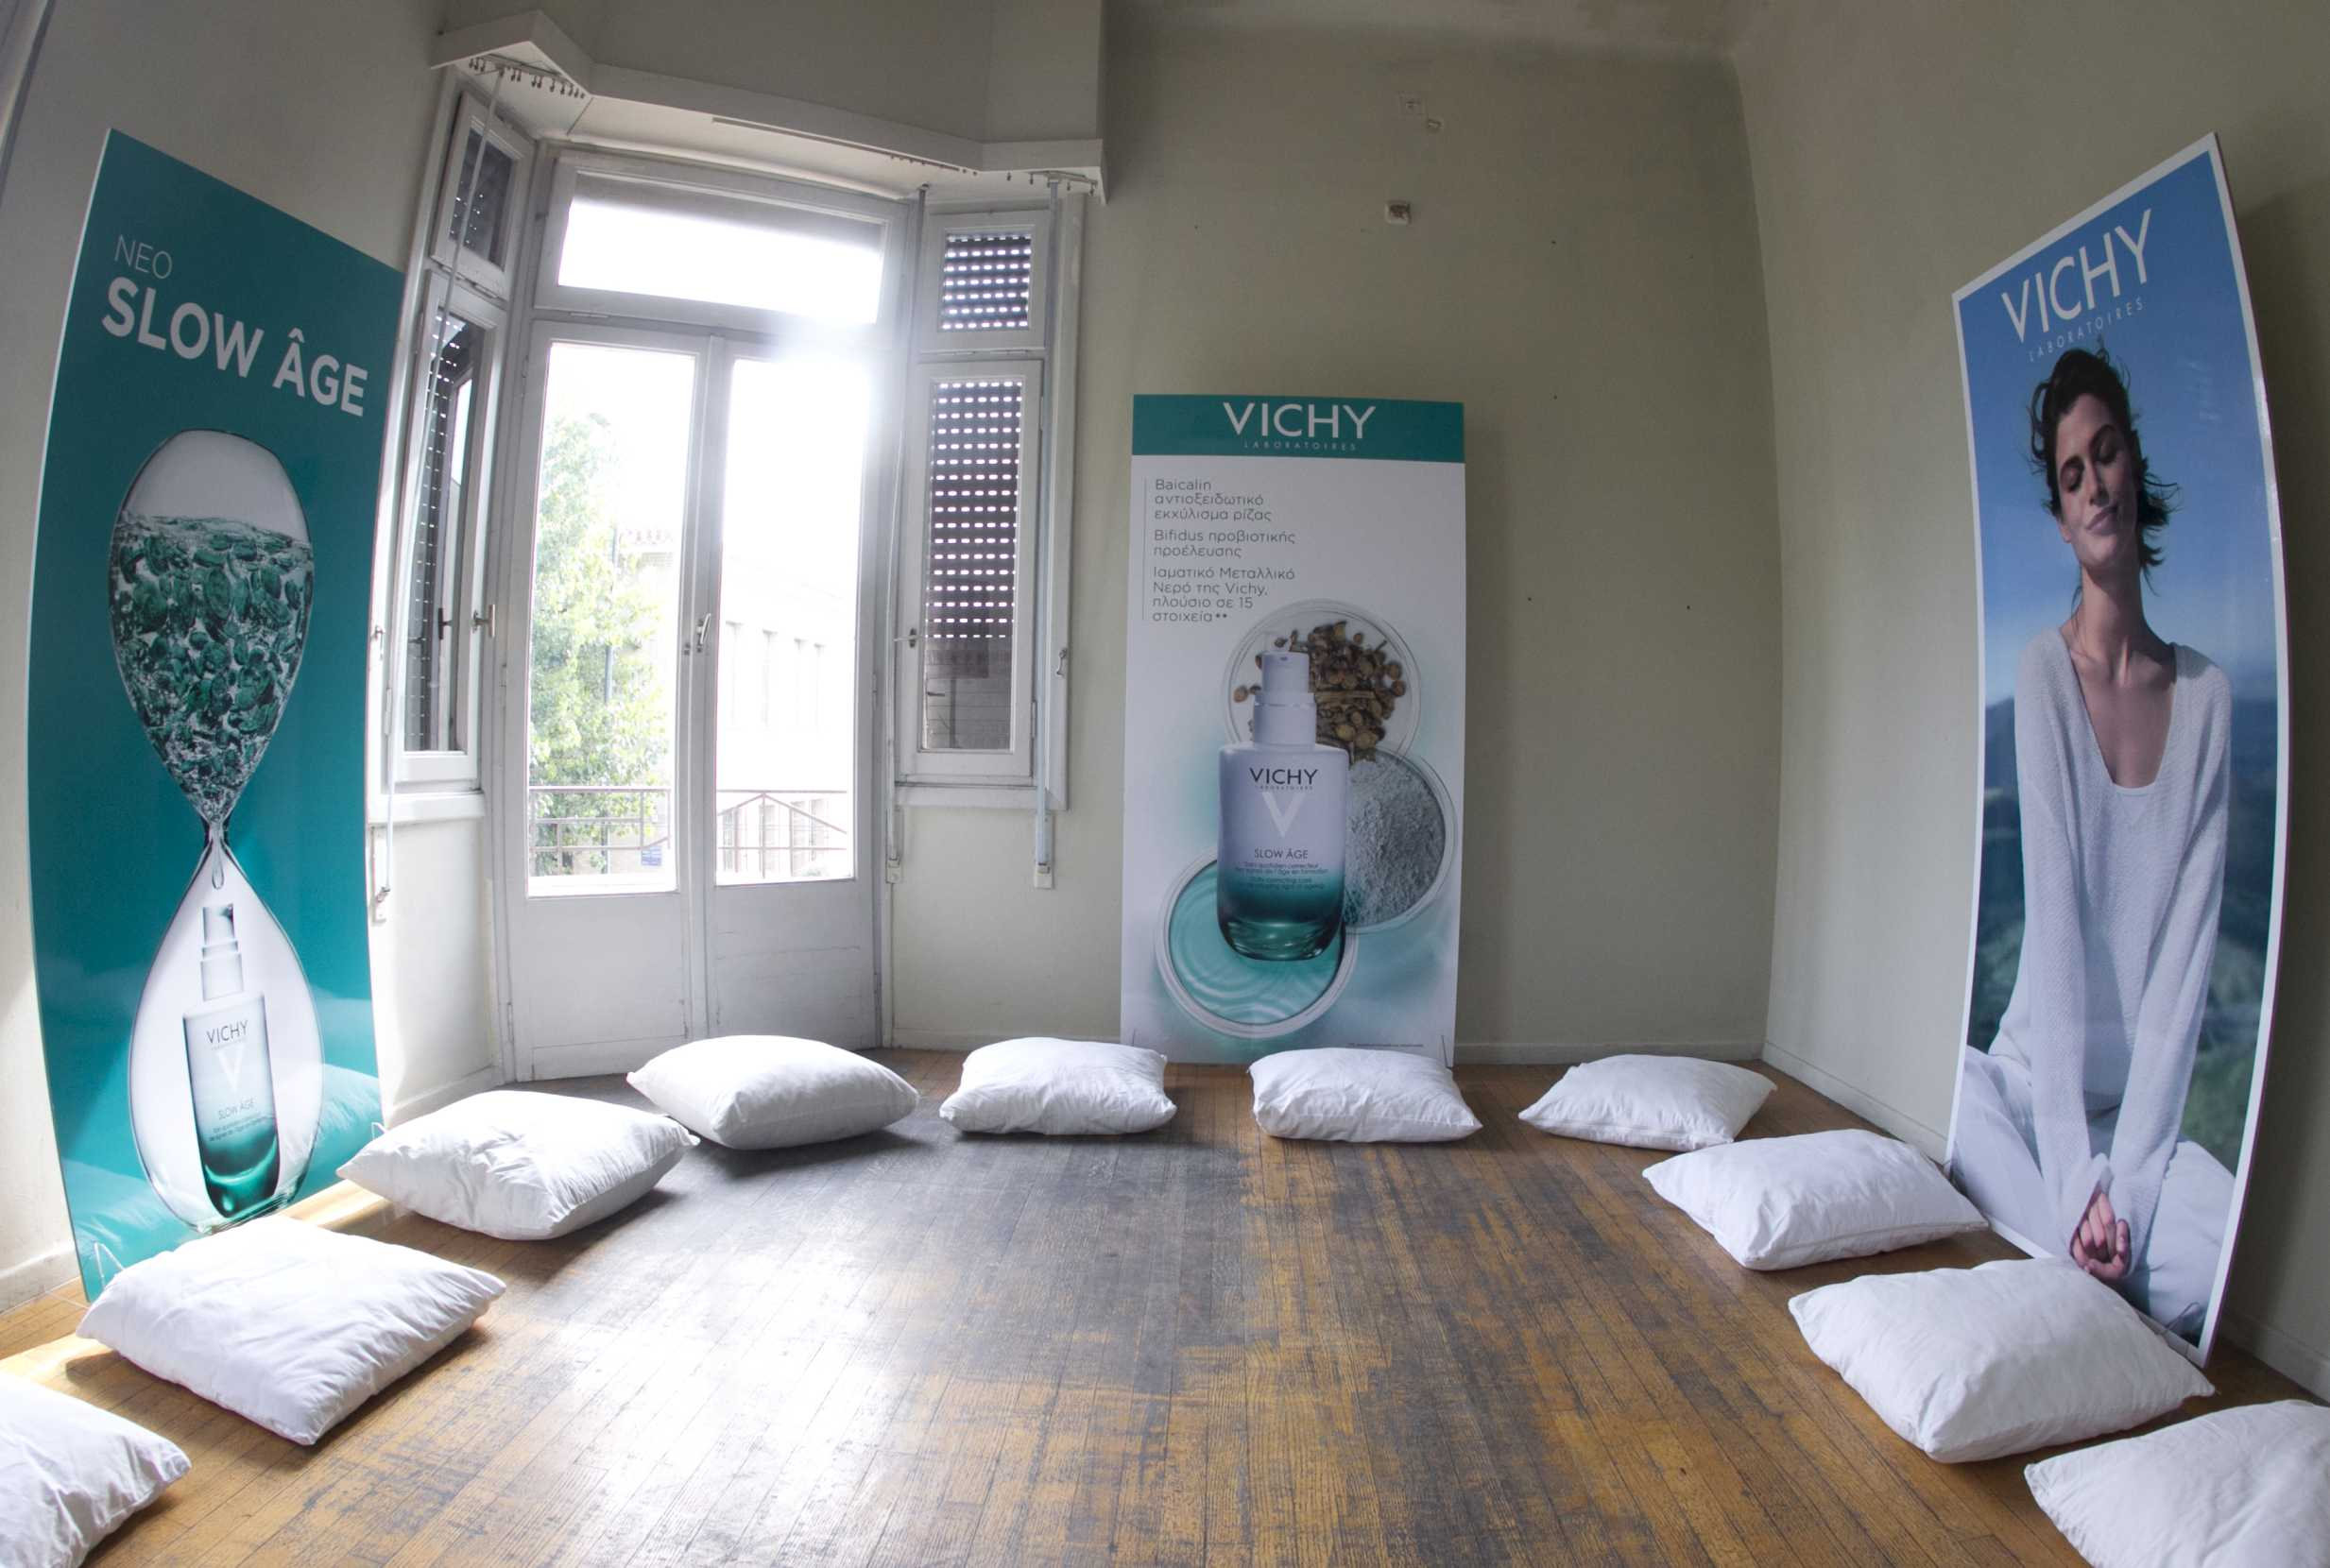 vichy_slow-age_face-yoga-room_